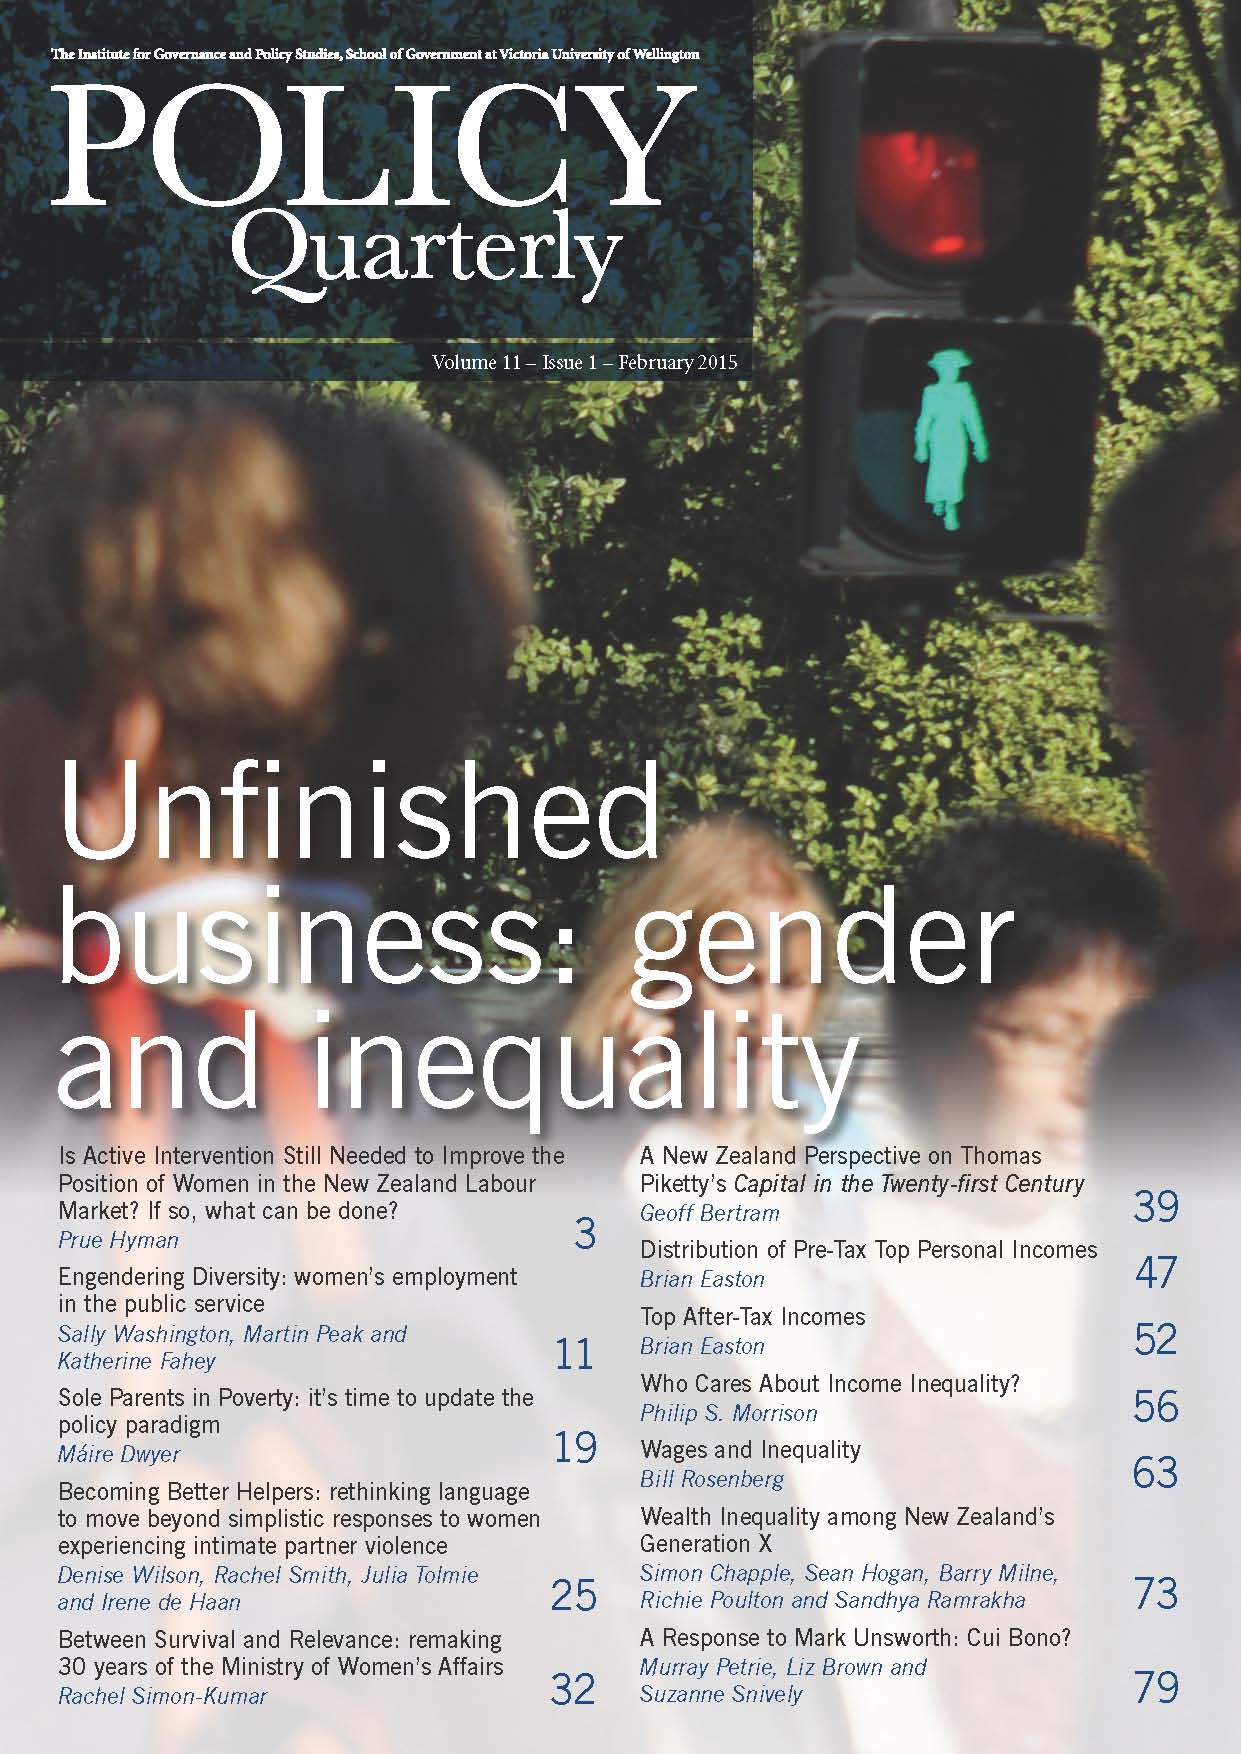 Policy Quarterly volume 11 issue 1 2015